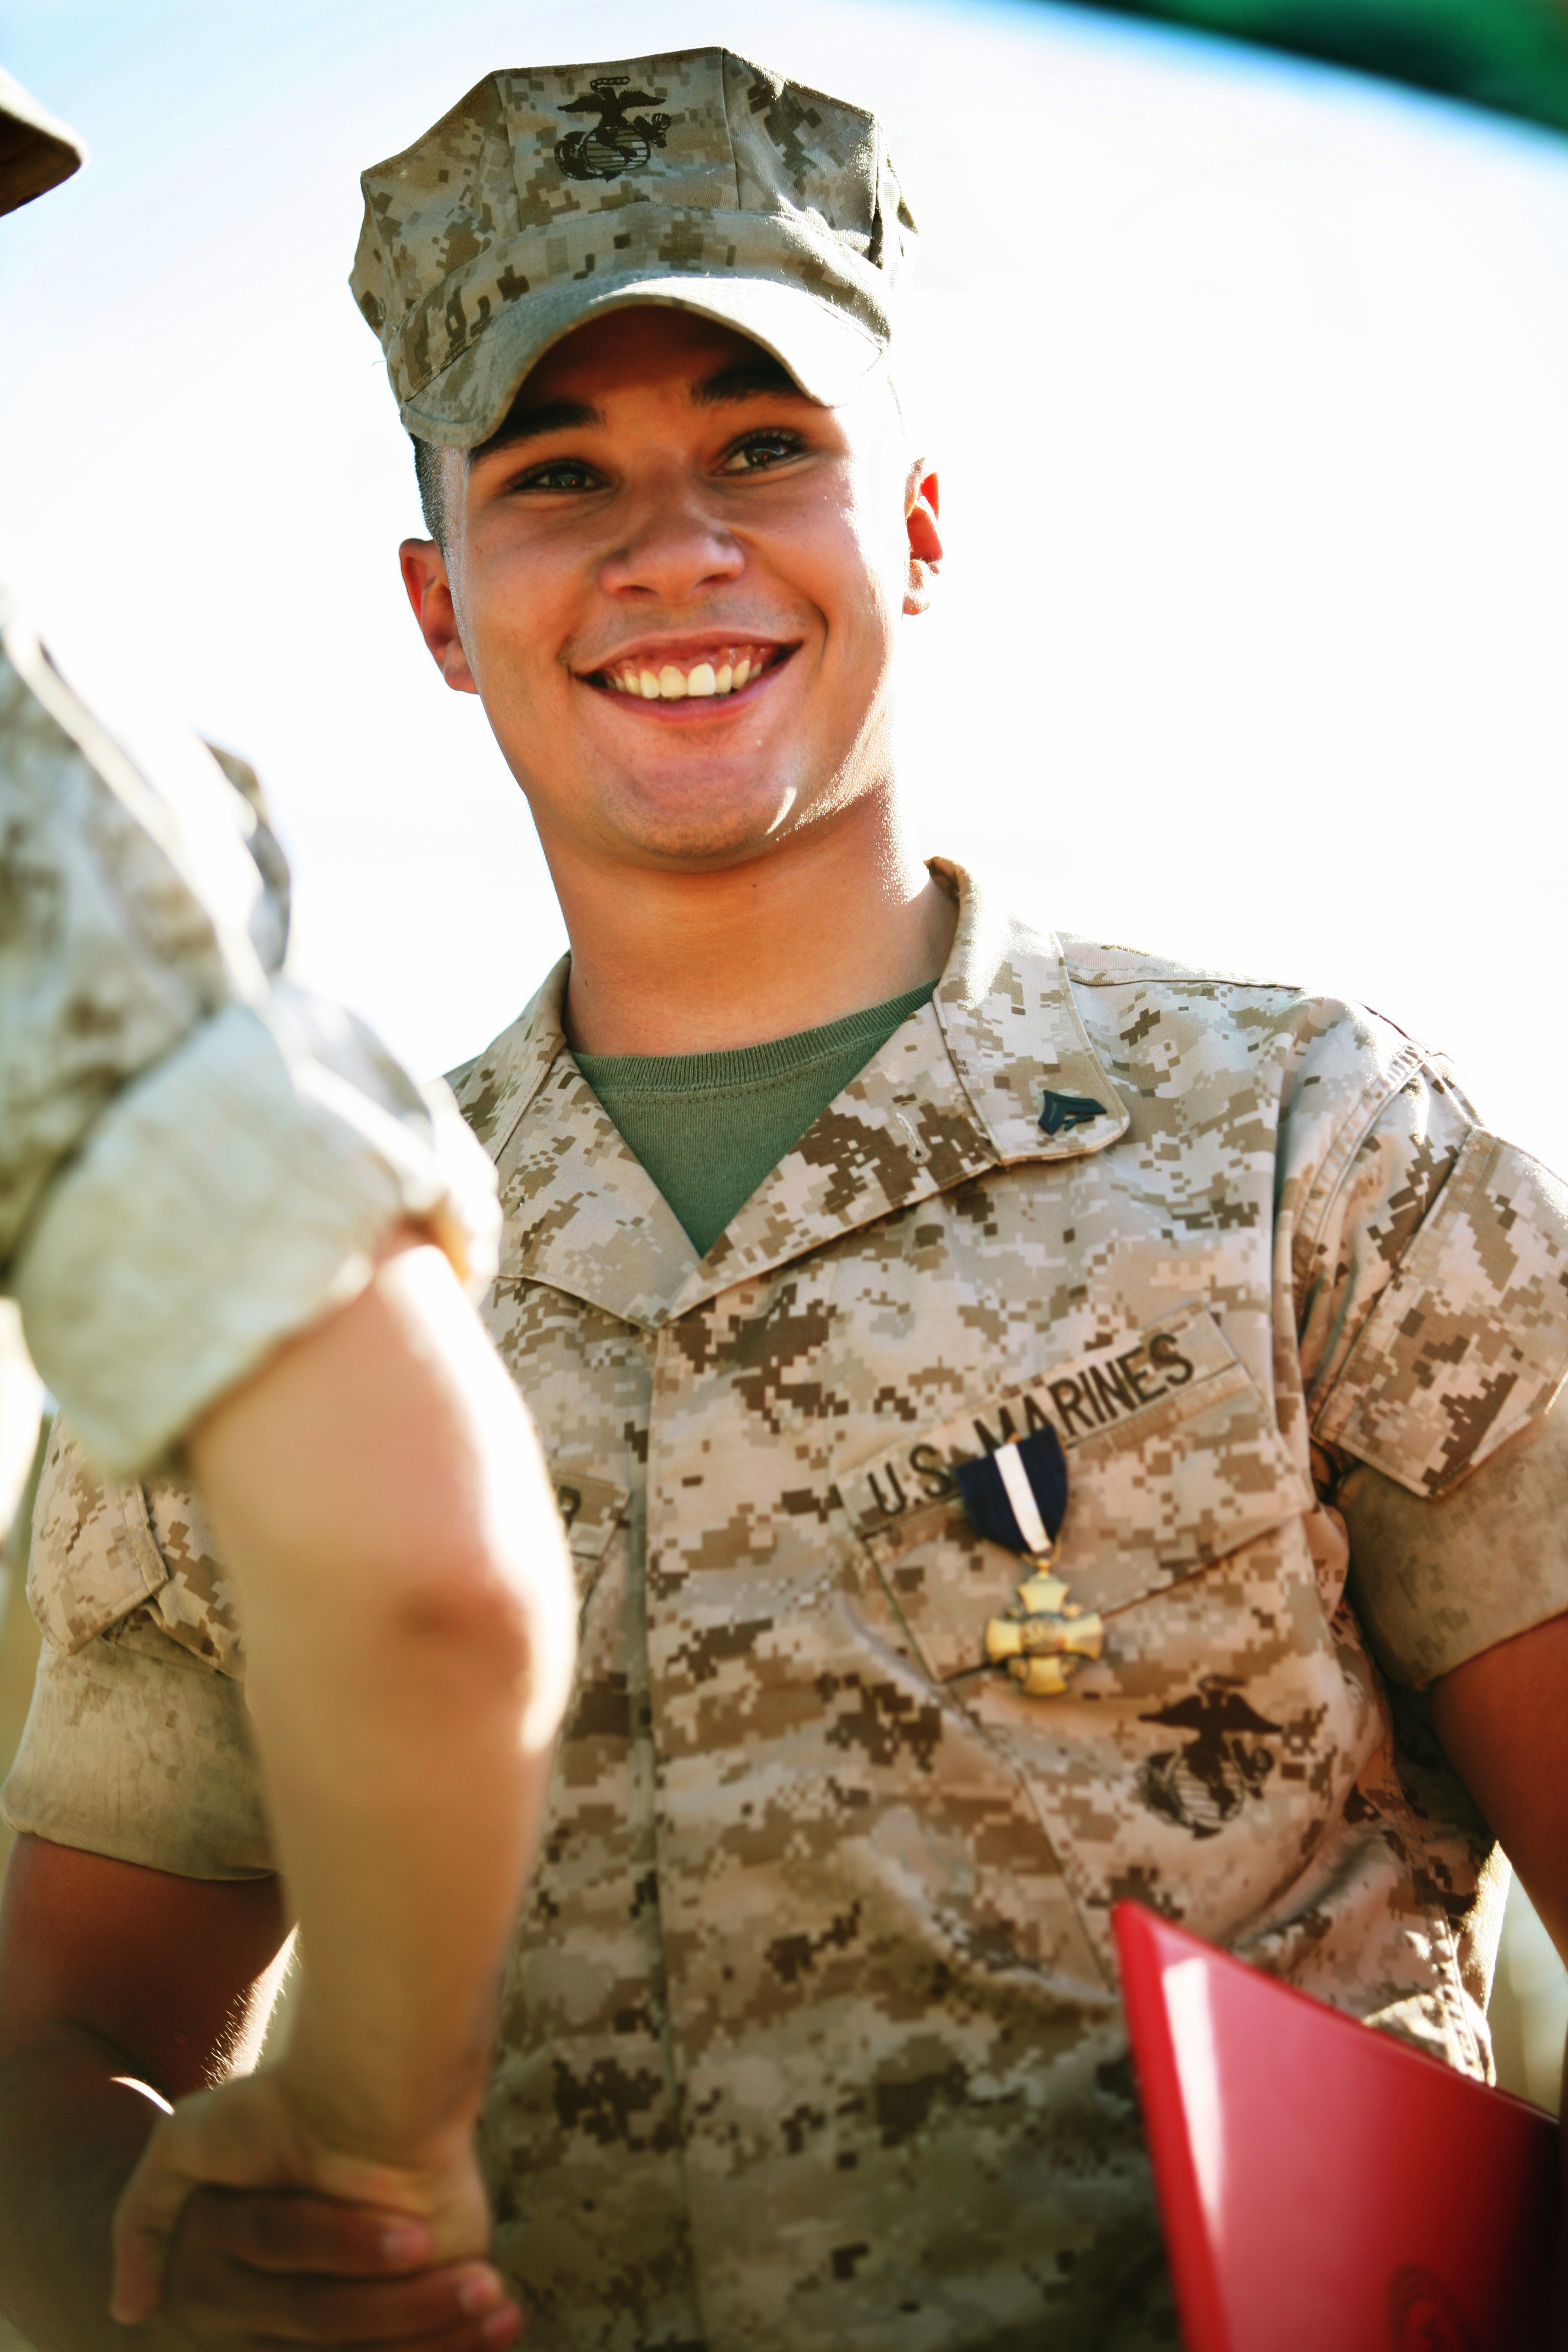 Cpl. Richard S. Weinmaster, a Squad Automatic Weapon gunner with the 7th Marine Regiment smiles as he is awarded awarded the Navy Cross for personal heroism in combat.